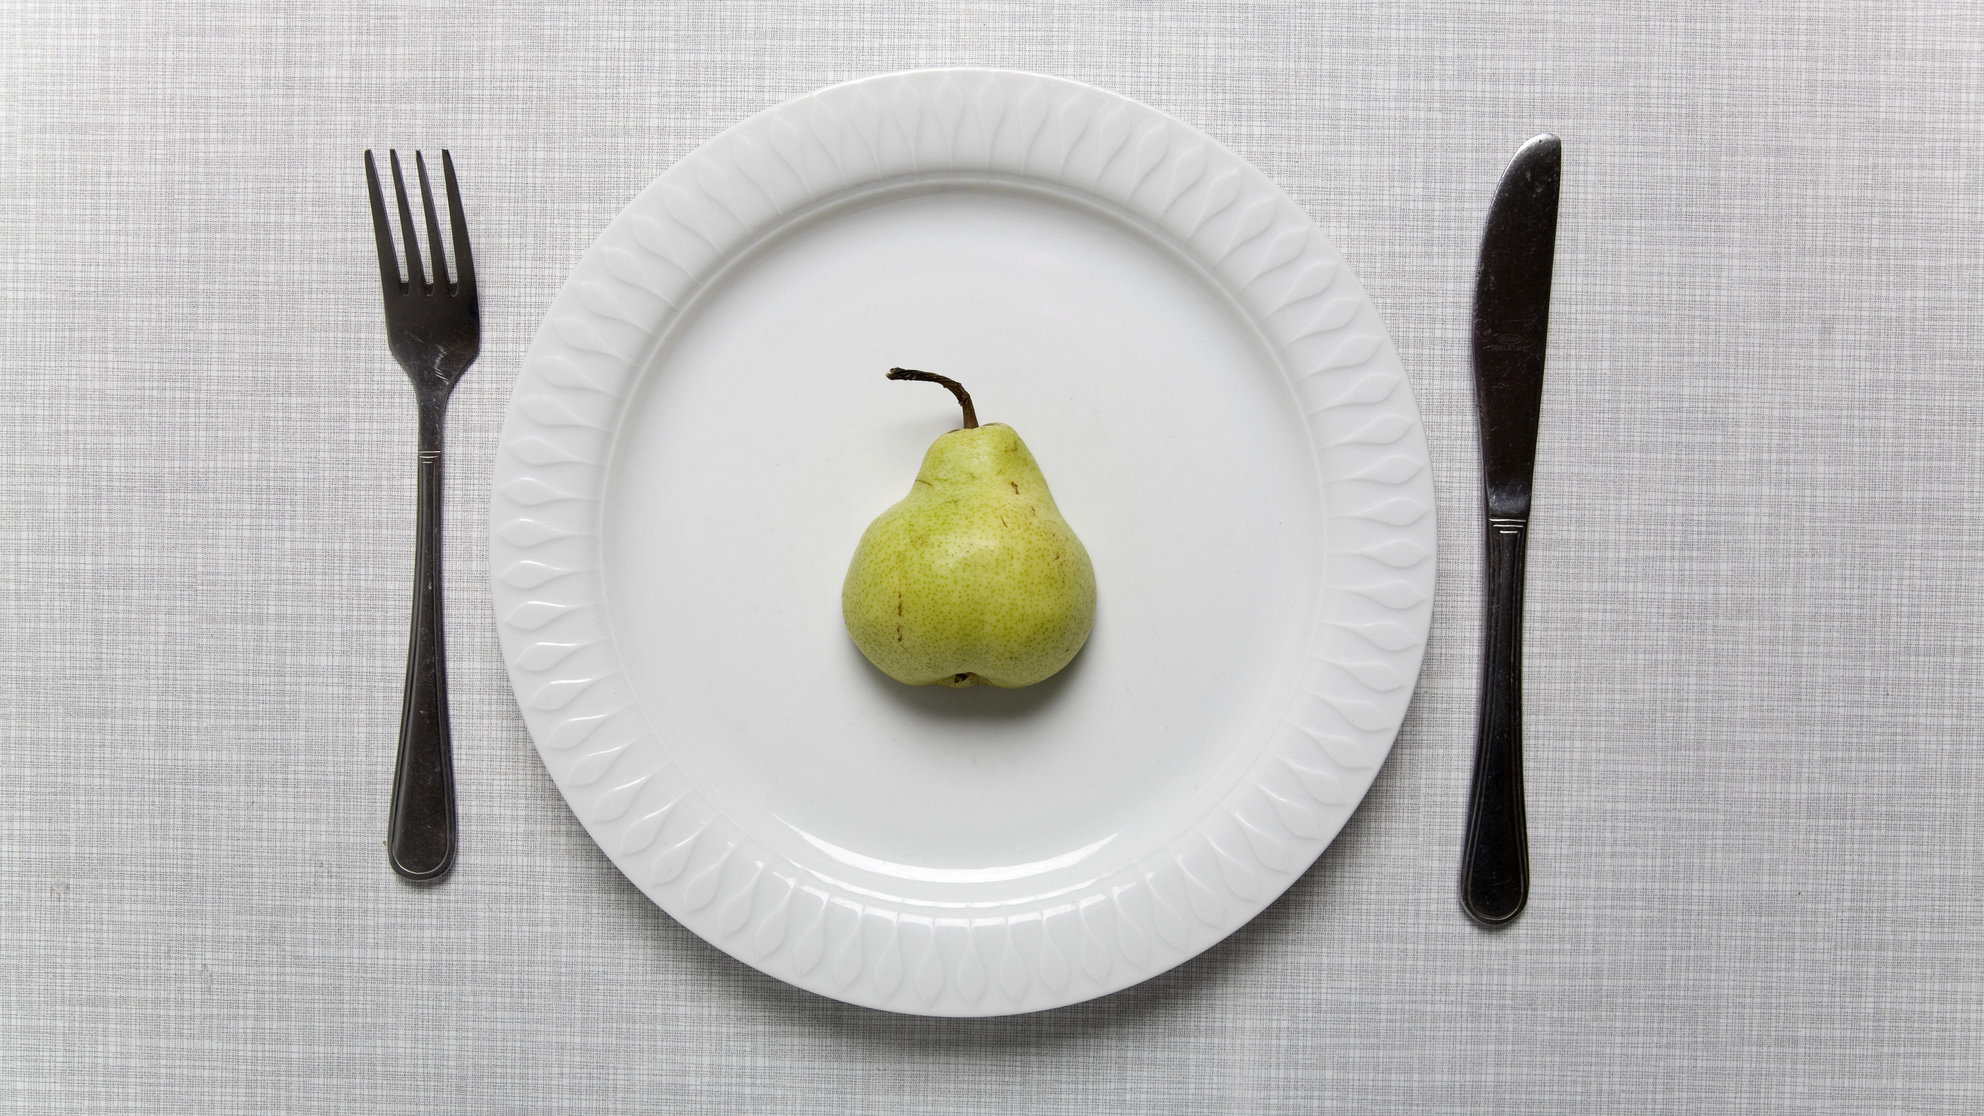 intermittent-fasting-pear-plate